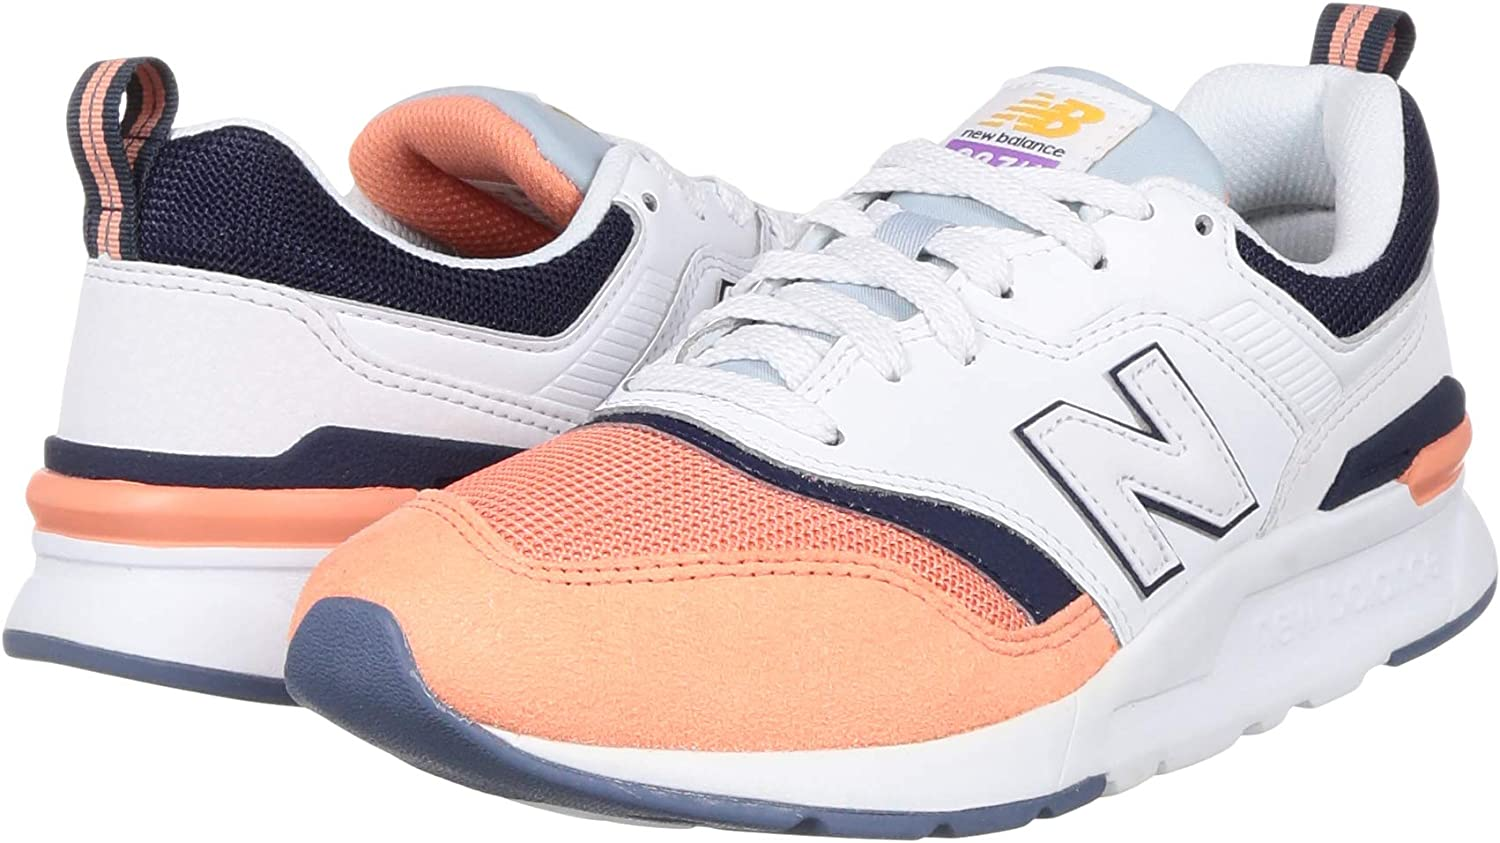 New Balance CW997HBD, Trail Running Shoe Womens, Blanco, 32 EU: Amazon.es: Zapatos y complementos